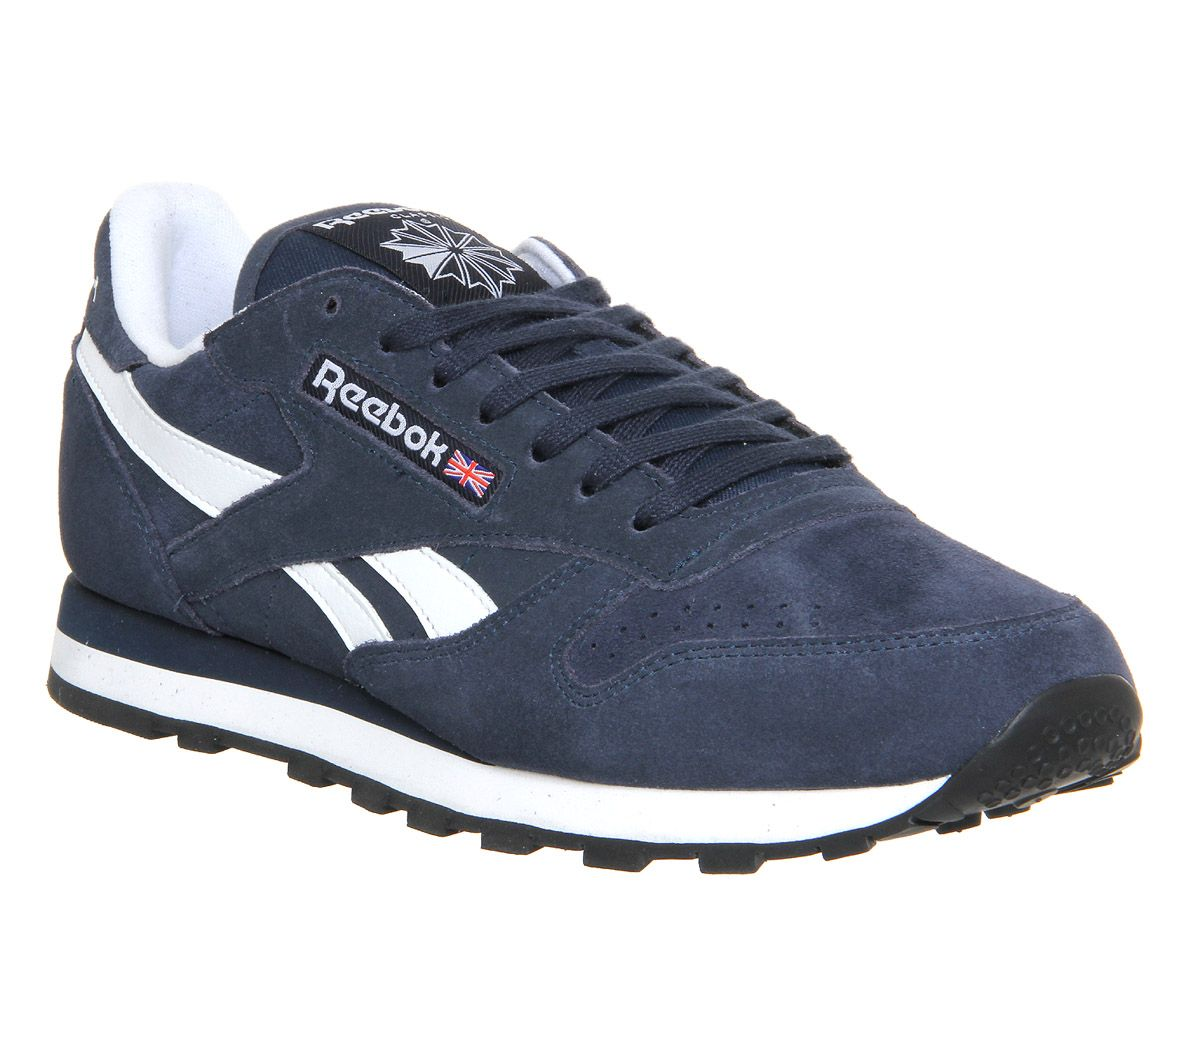 New Reebok Classic royal CL jogger black white synthetic leather sports trainers Black /